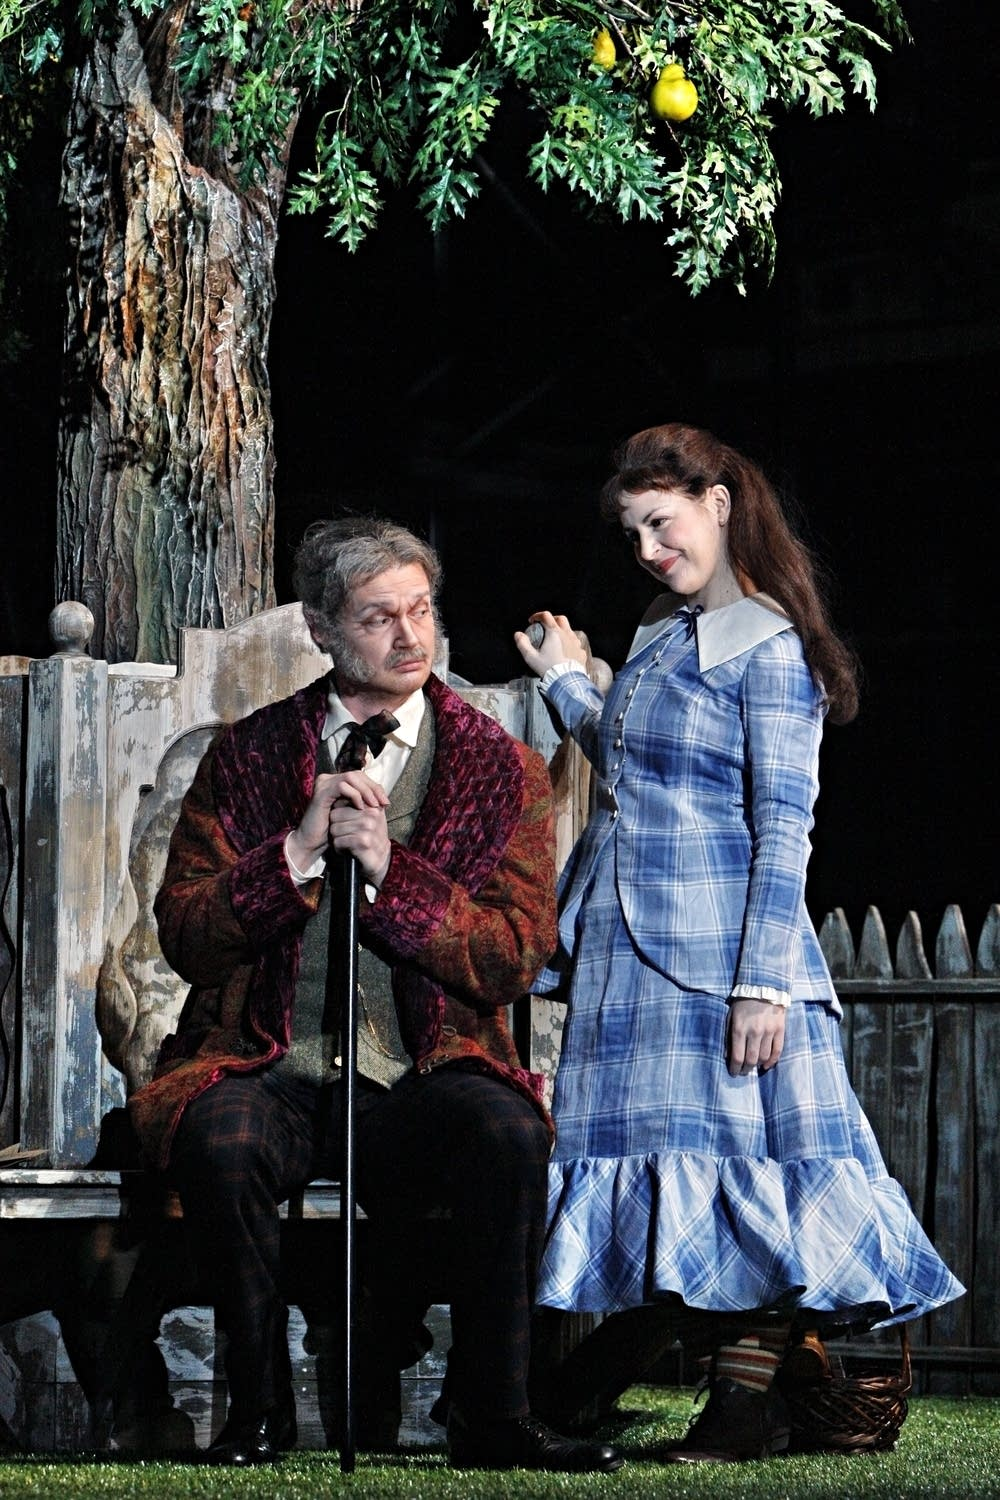 Beutel as Le Bailli and Mortellaro as Sophie